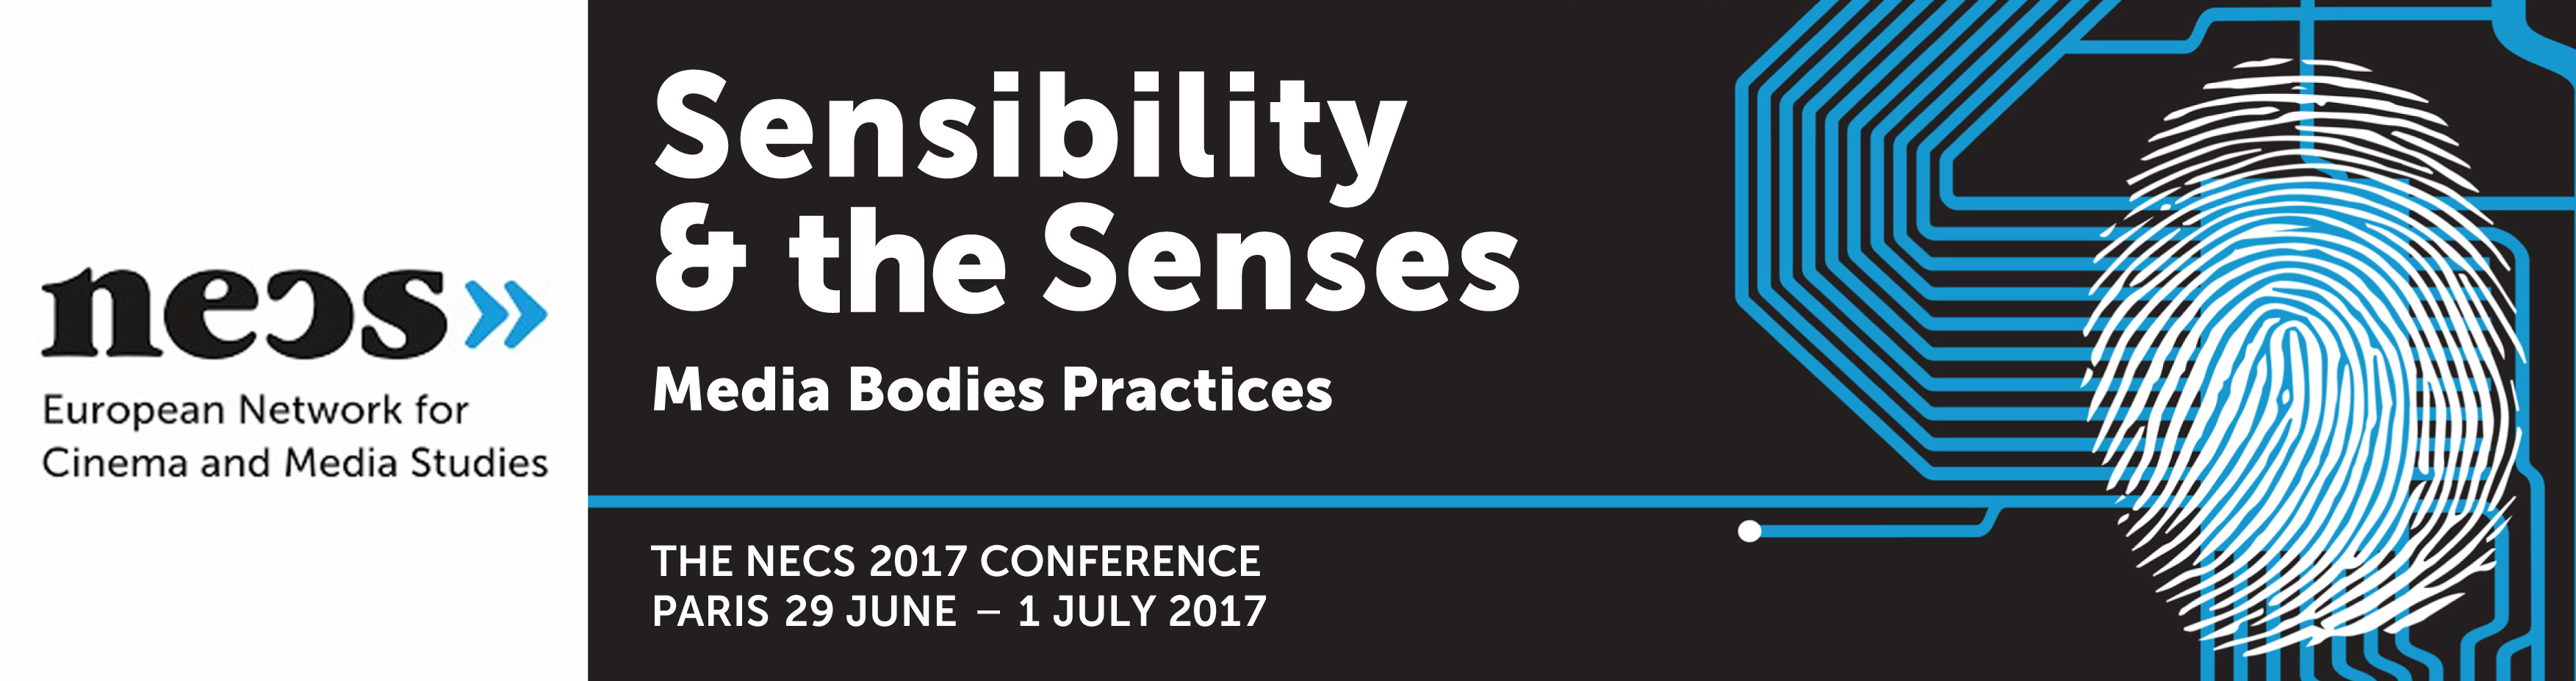 The NECS 2017 Conference